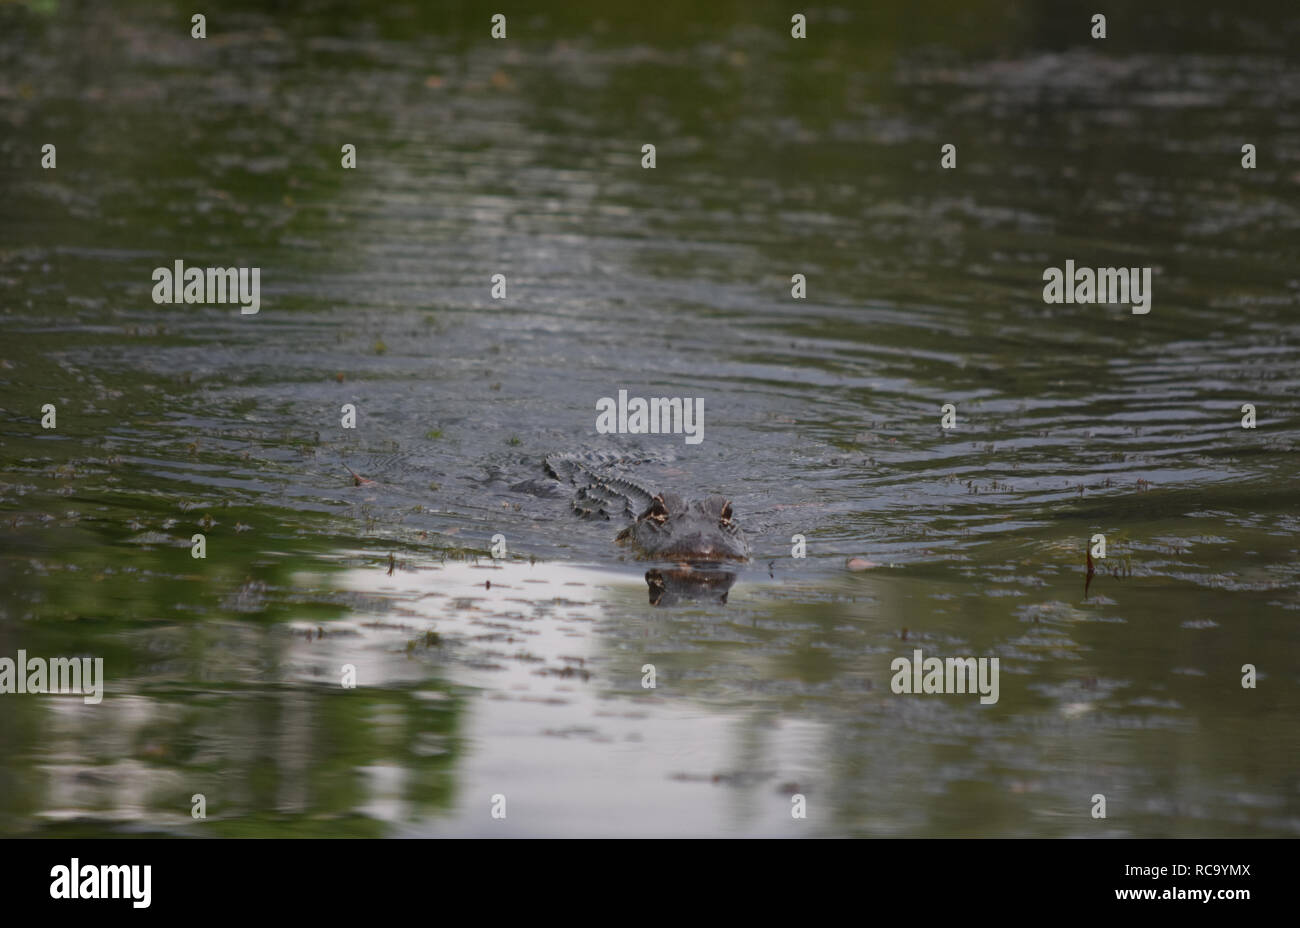 Scarey alligator swimming swiftly through the swamps of New Orleans. - Stock Image